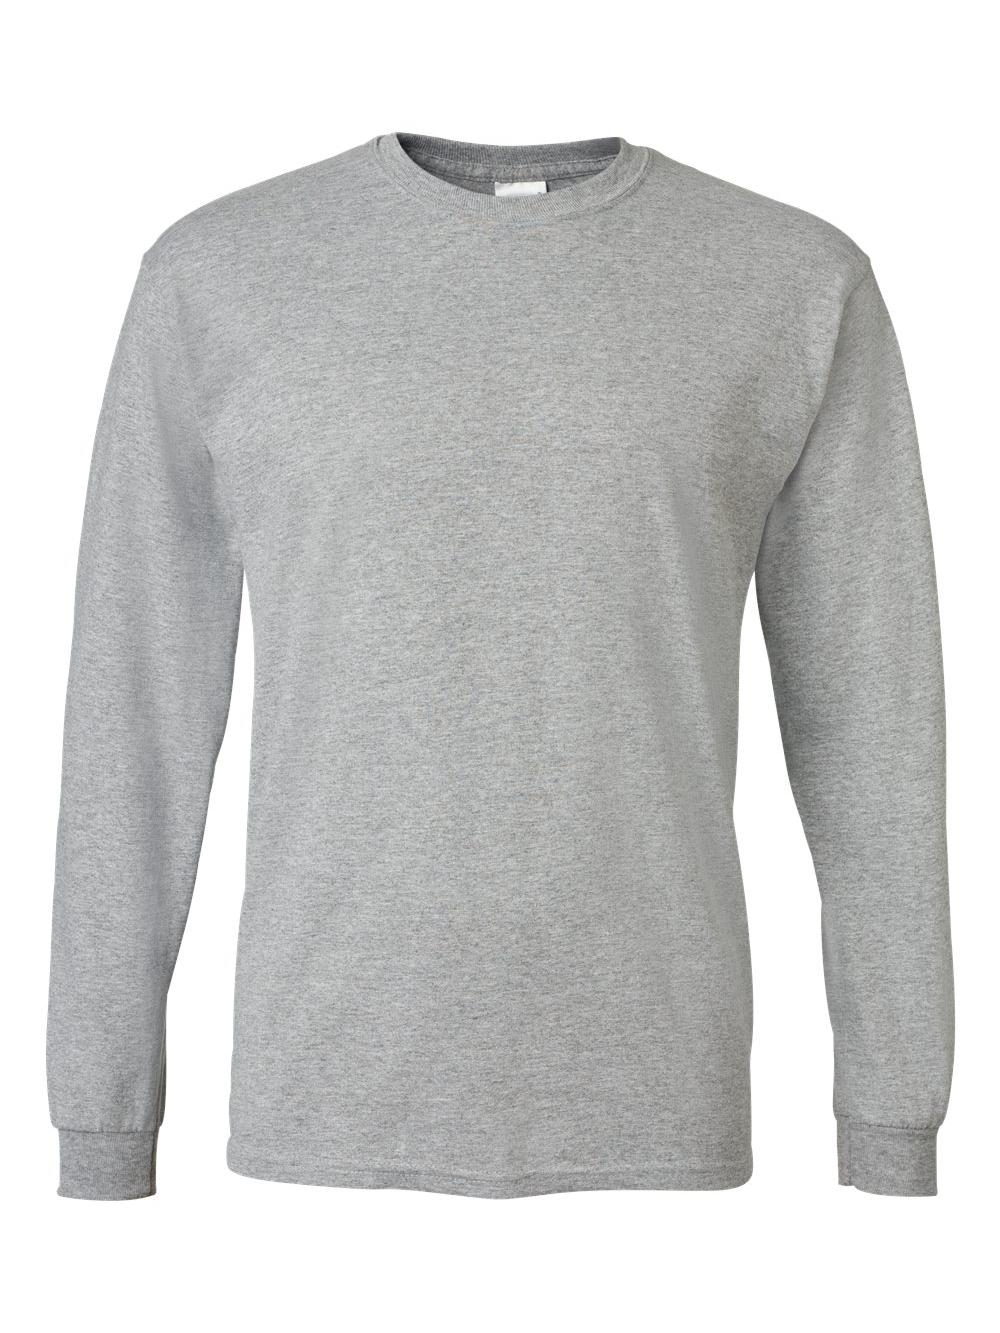 Gildan-DryBlend-50-50-Long-Sleeve-T-Shirt-8400 thumbnail 43